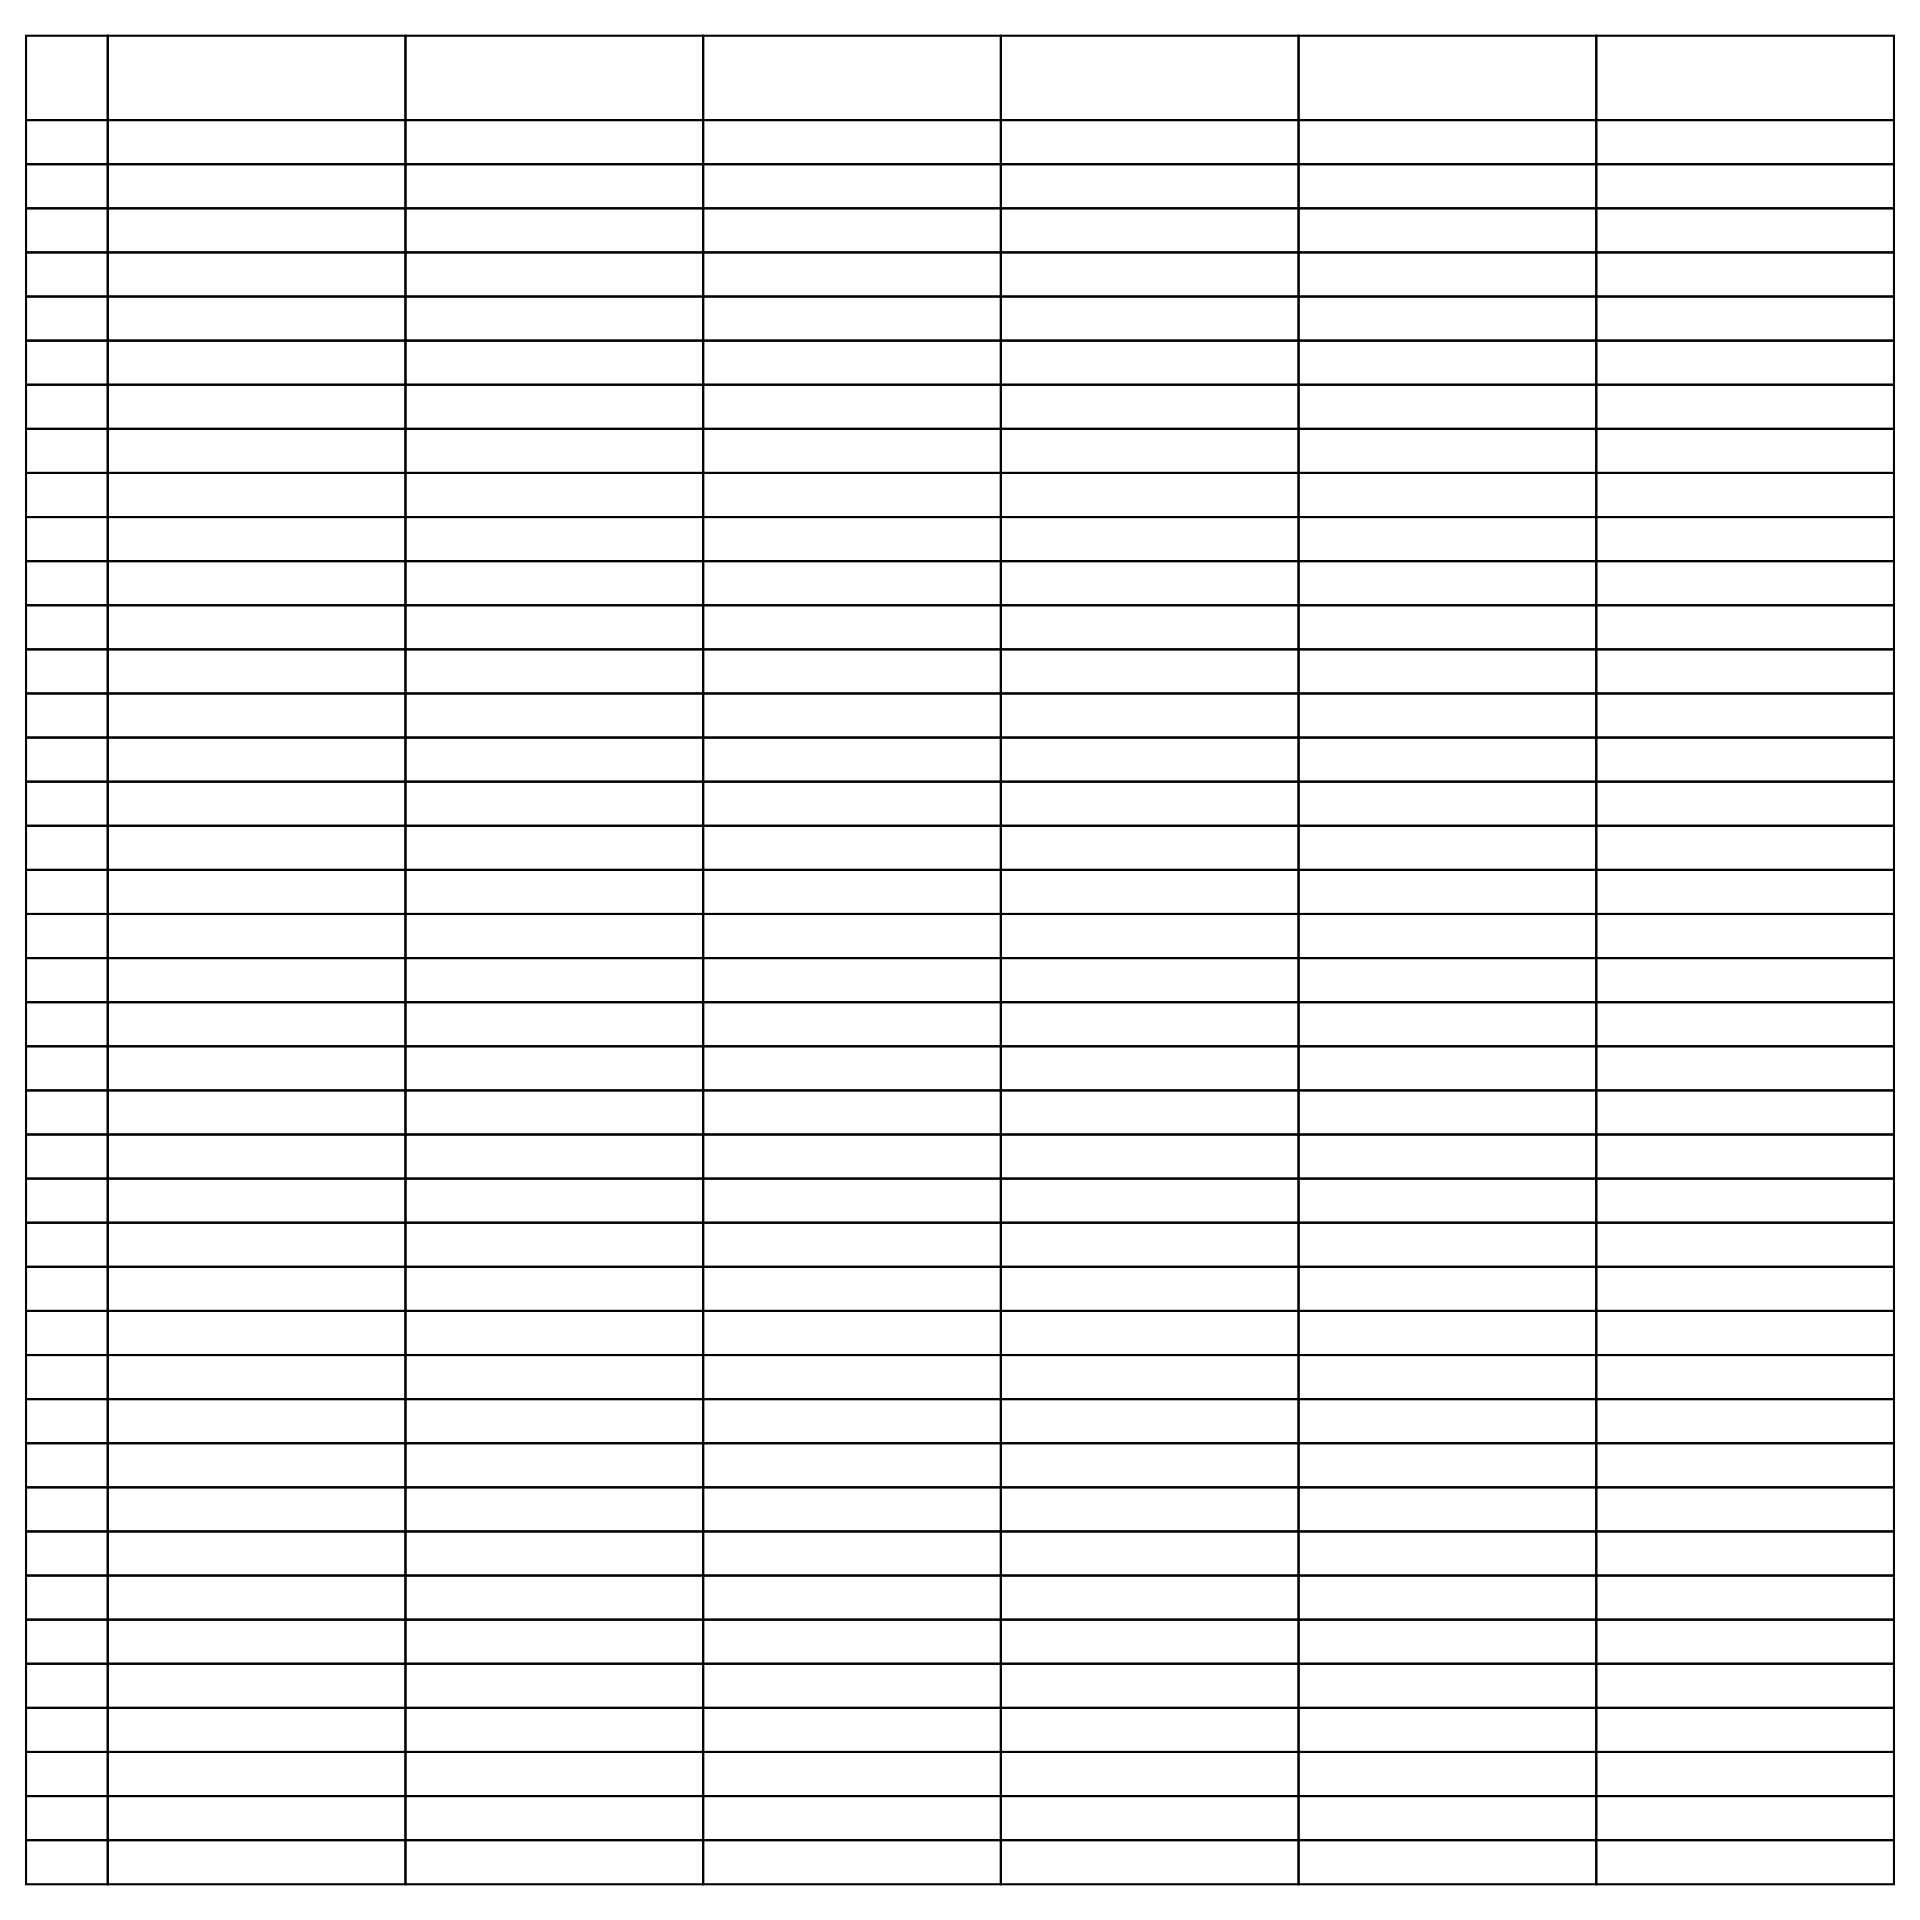 free blank spreadsheet templates - 9 best images of free printable spreadsheets for business